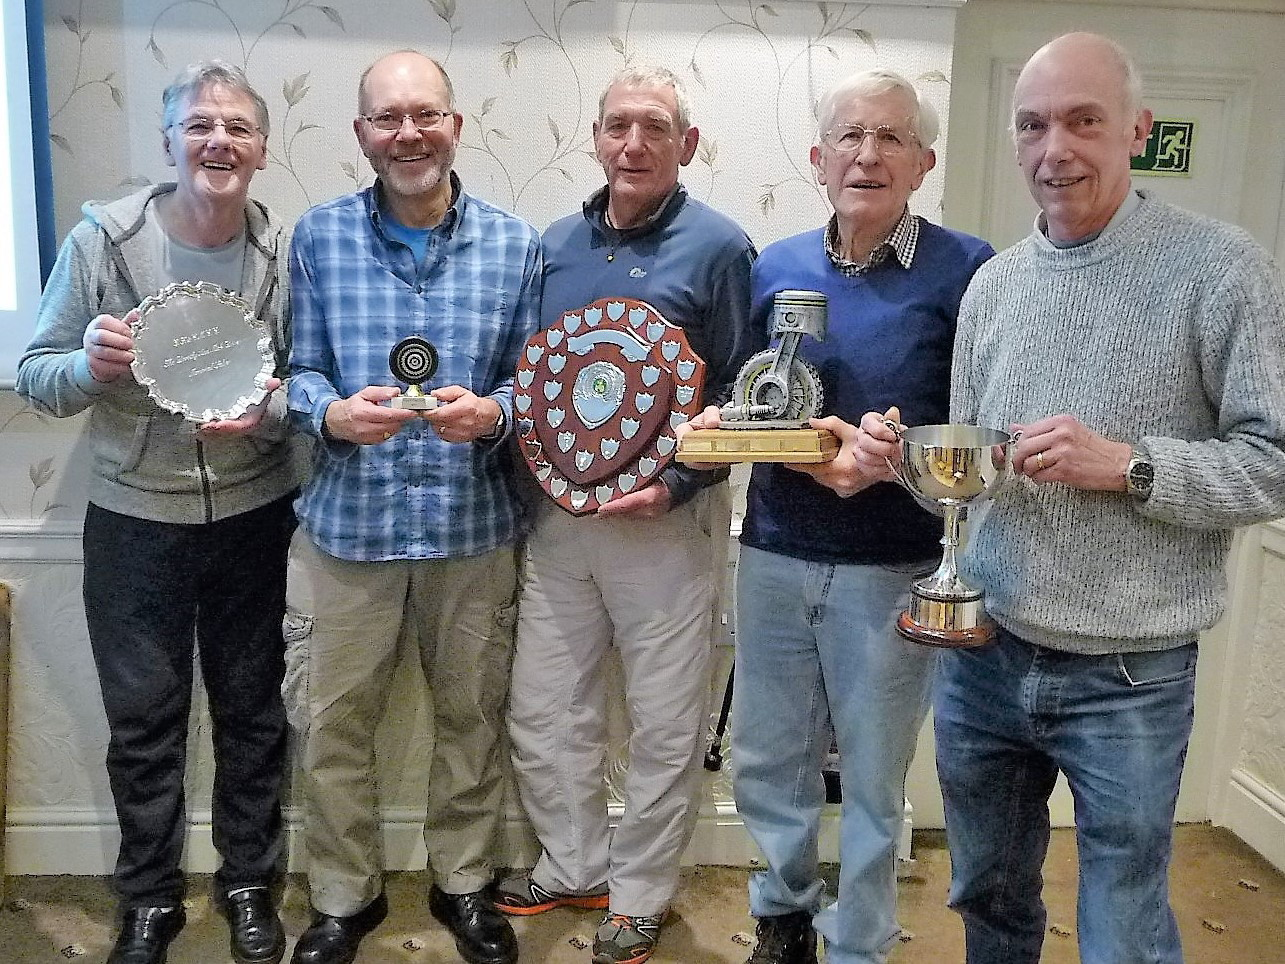 Girder Fork and Classic Motorcycle Club prizewinners, from left, Maurice Owens, Keith Ruddock, Alan Ralph, Brian Sanderson and Tim Ellis